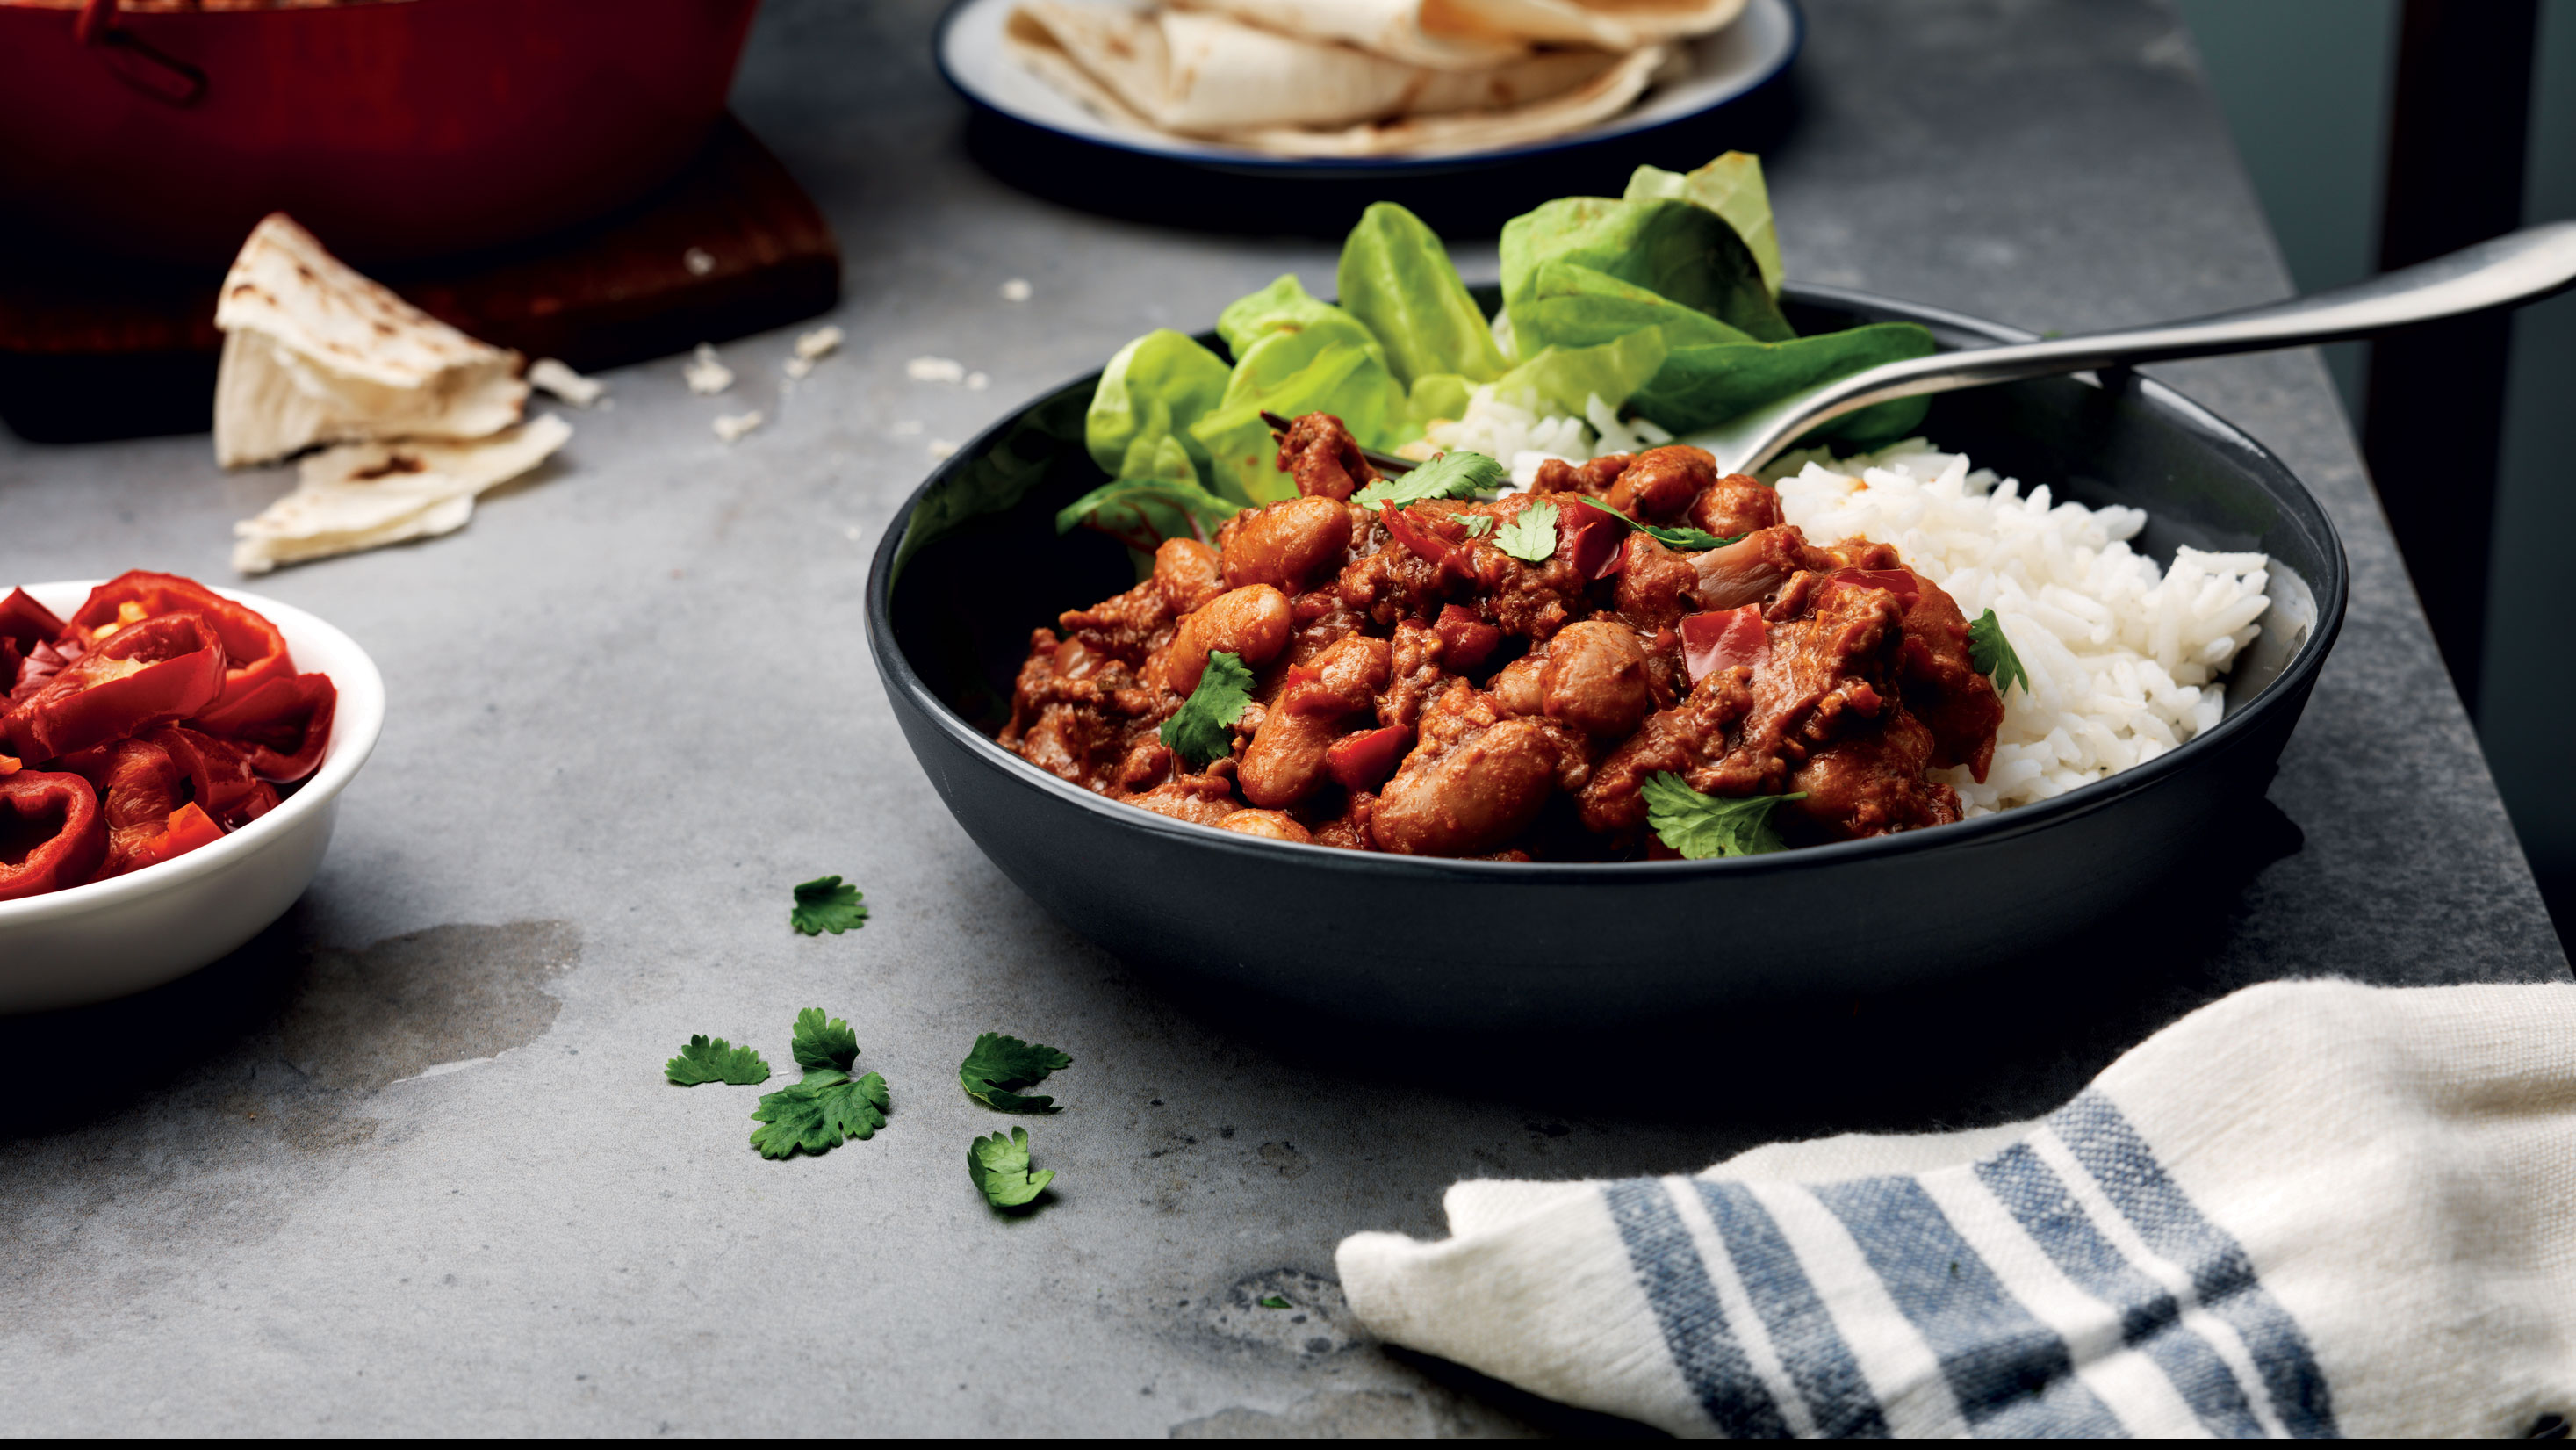 Chilli Con Carne with Smoked Paprika & Chipotle Seasoning & Sauce